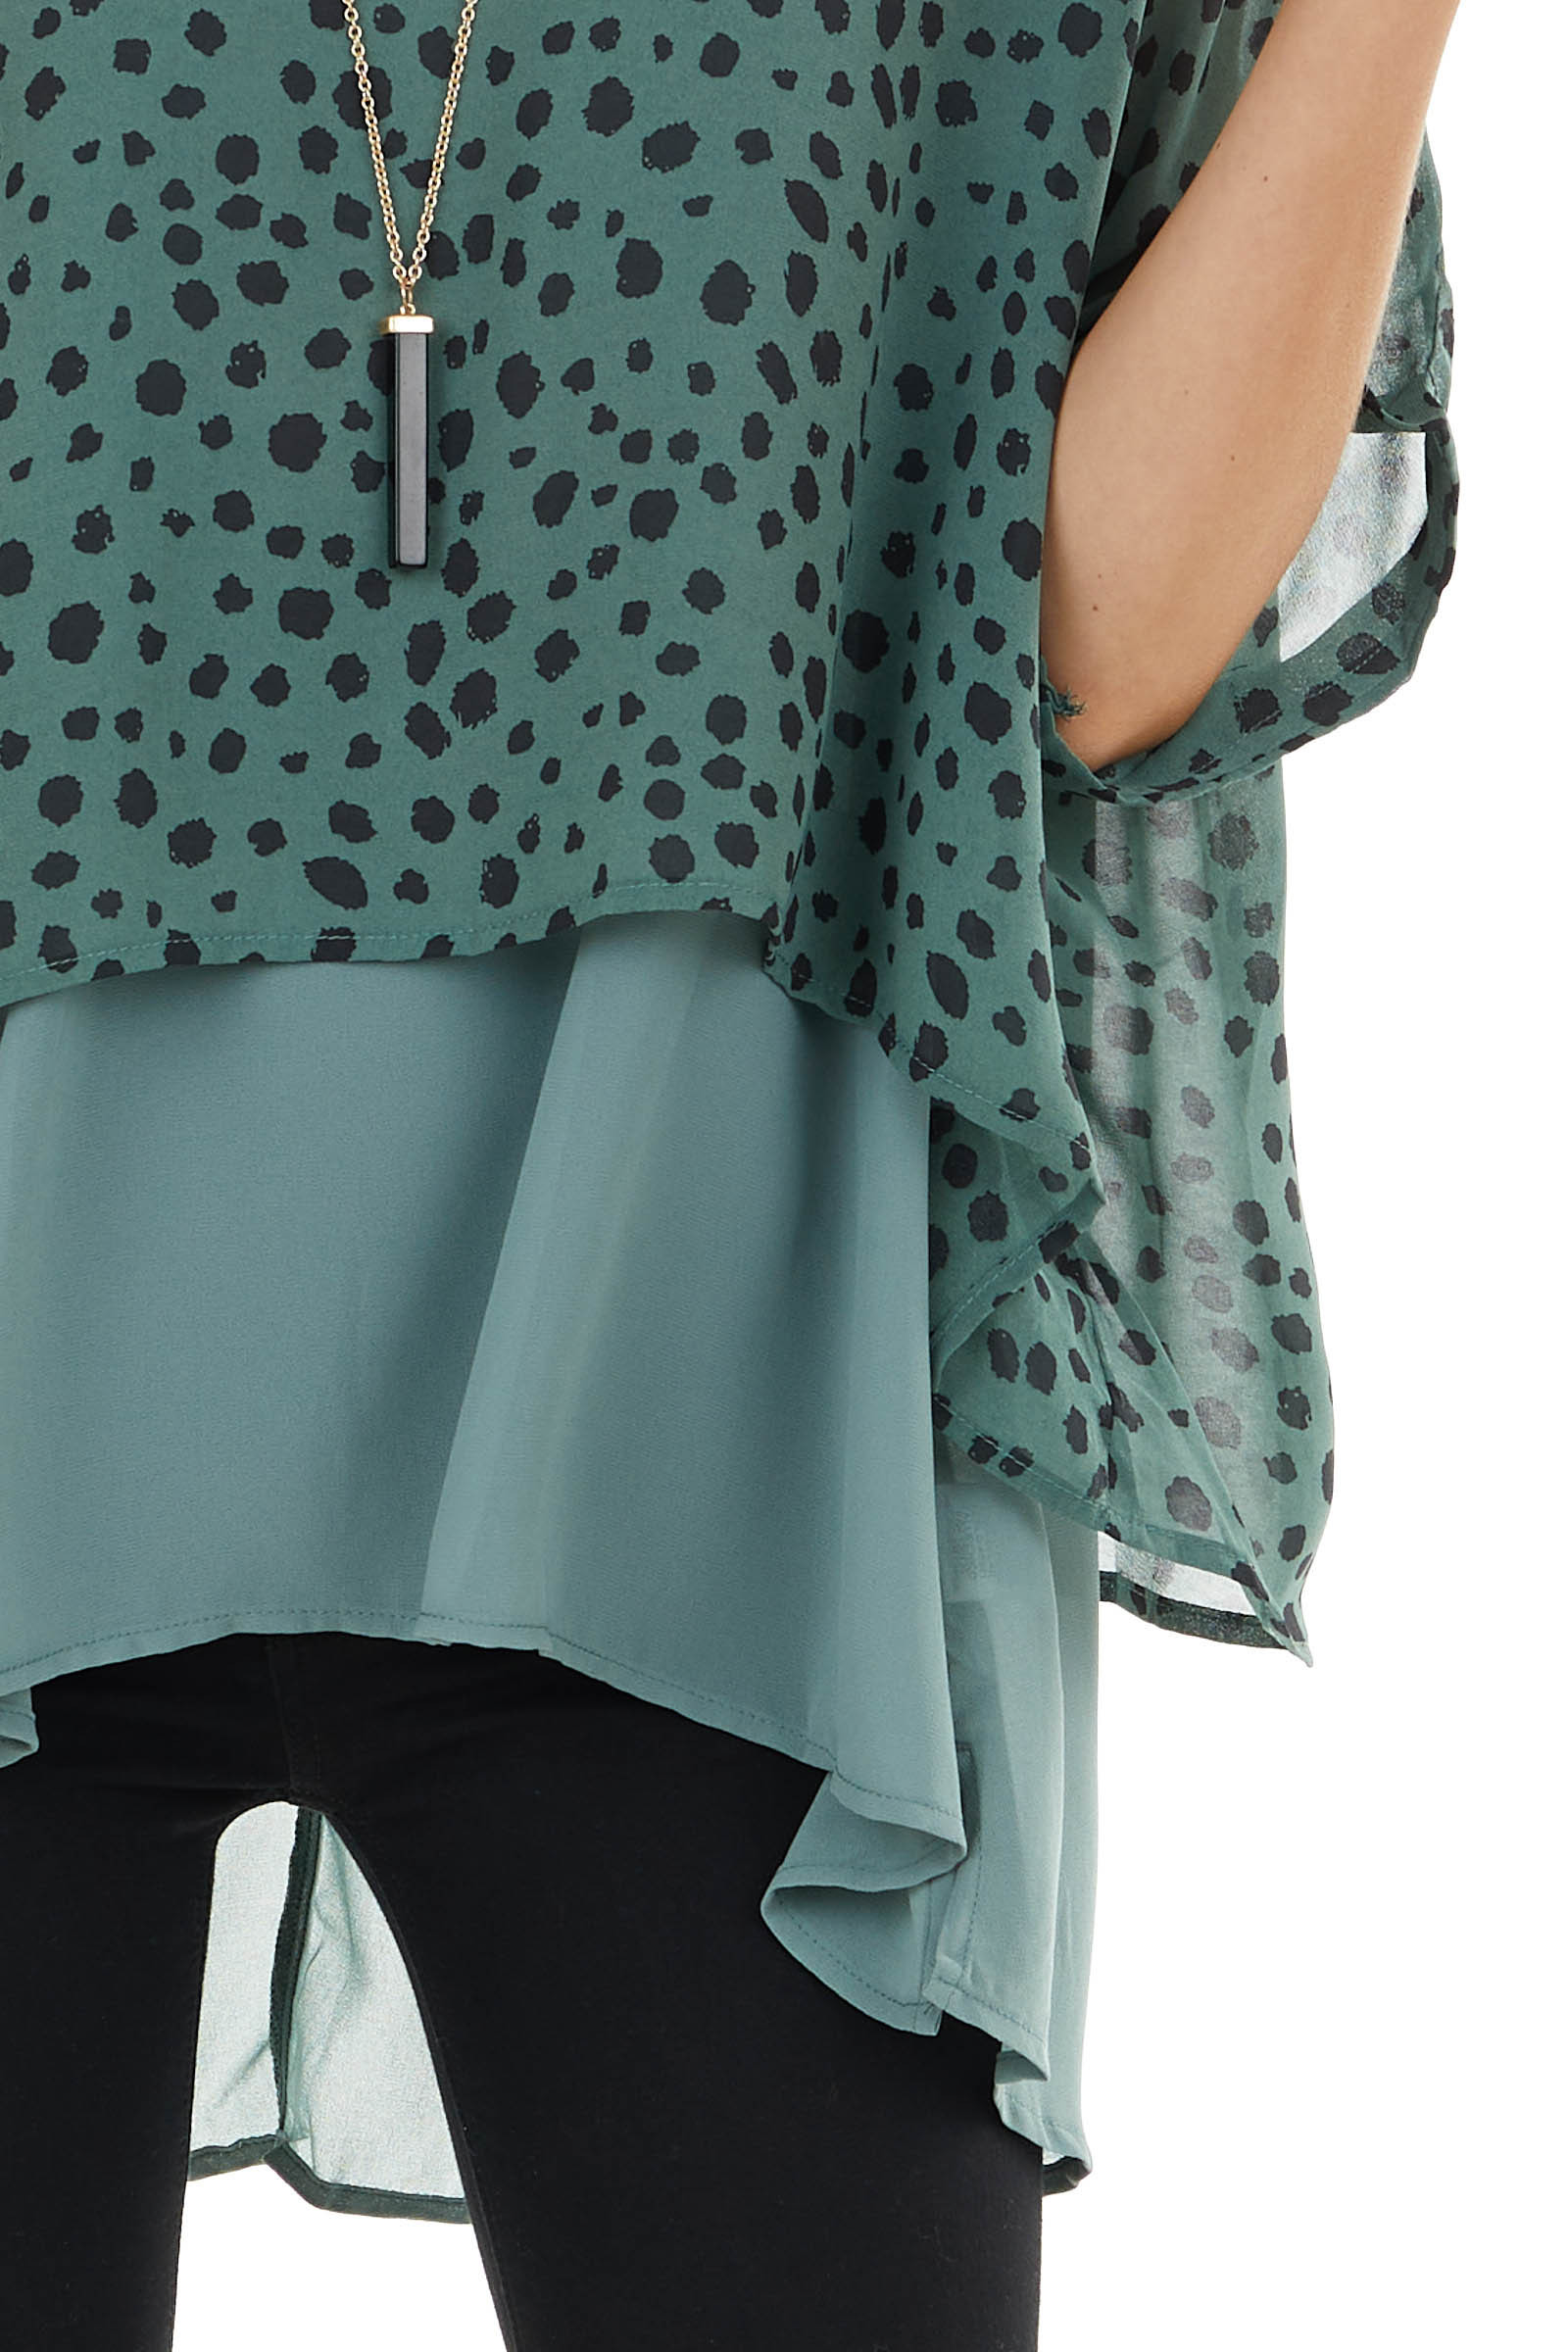 Dusty Sage Cheetah Print Layered Top with Short Sleeves